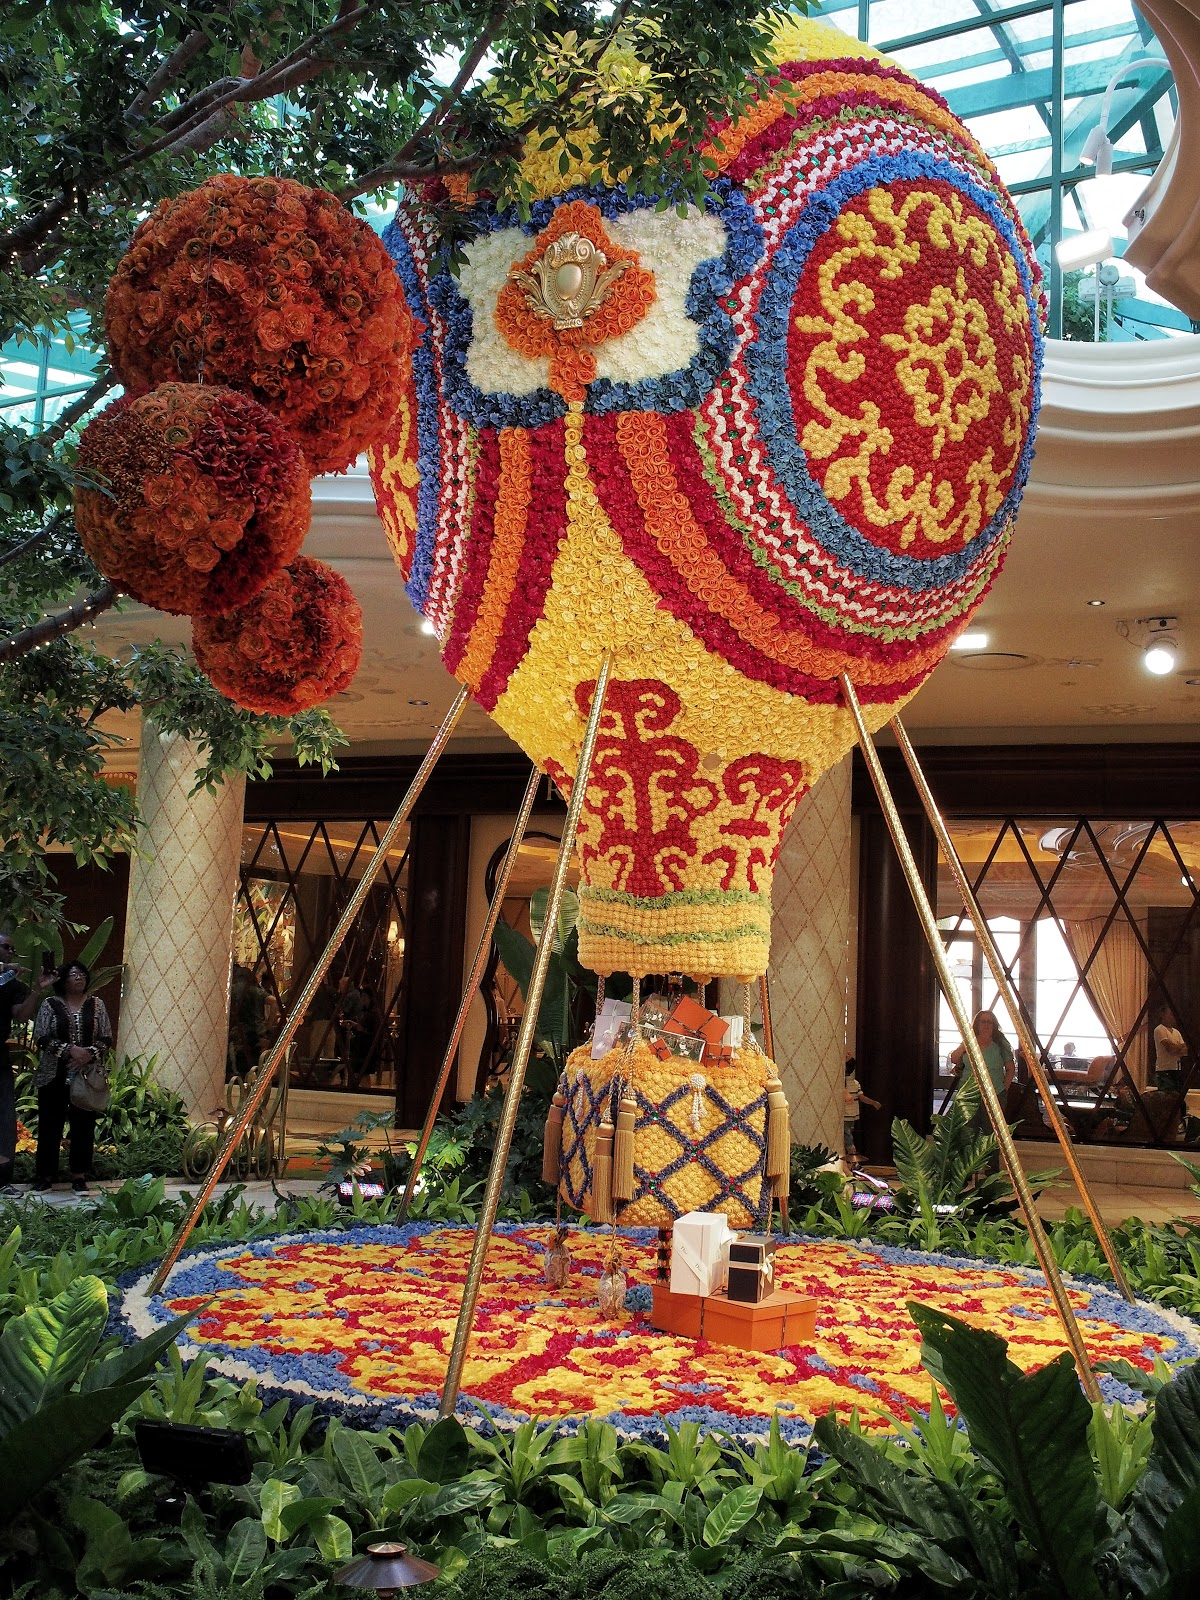 Flower Balloon at the Wynn, #hotairballoon #flowerballoon #wynn #lasvegas #flower #flowerpower #balloon